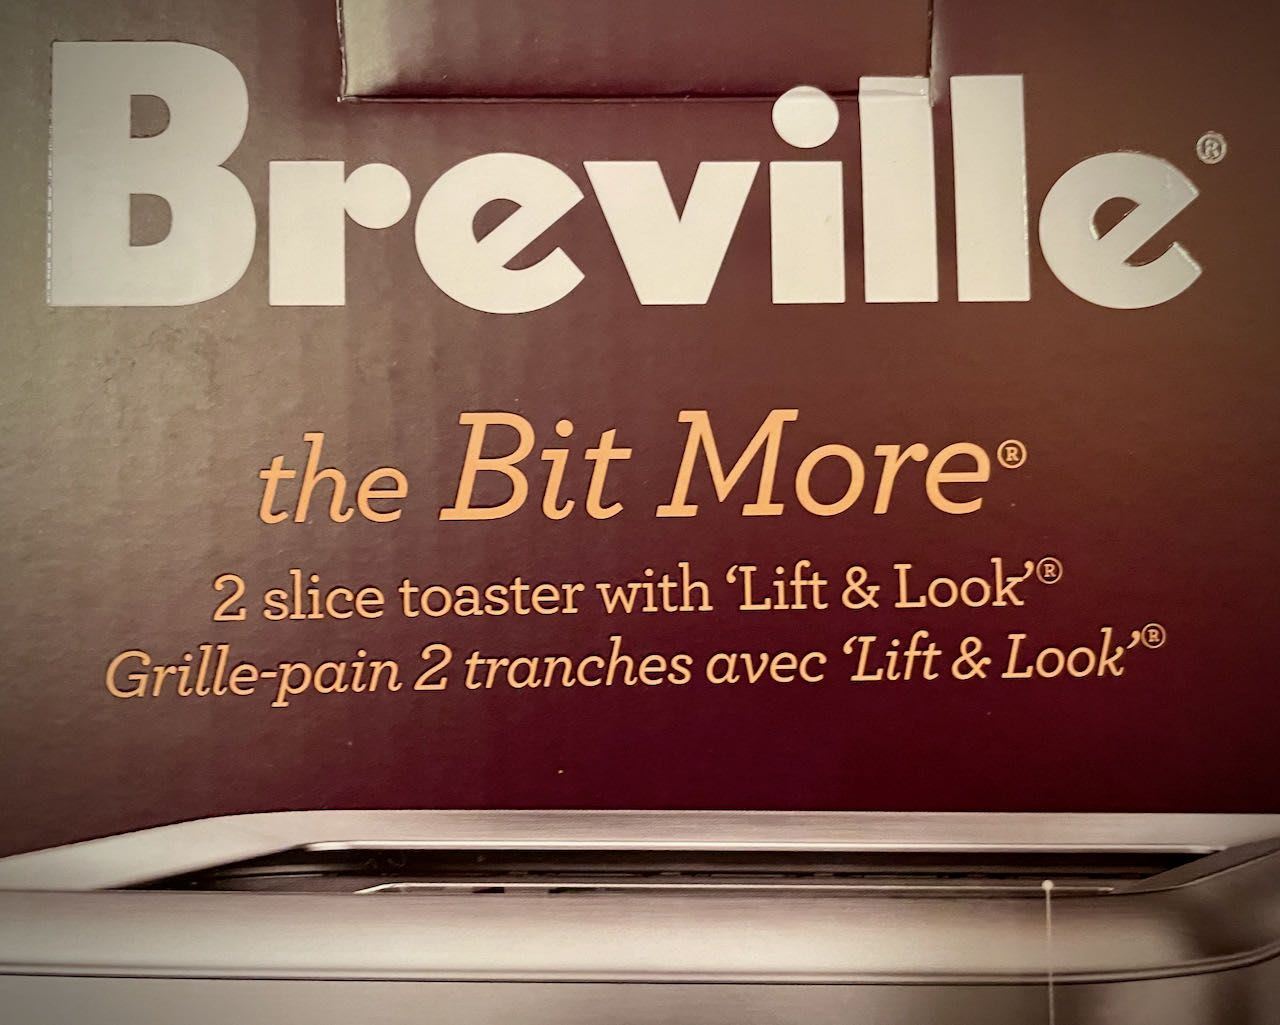 """The box for the Breville """"the Bit More"""" toaster"""